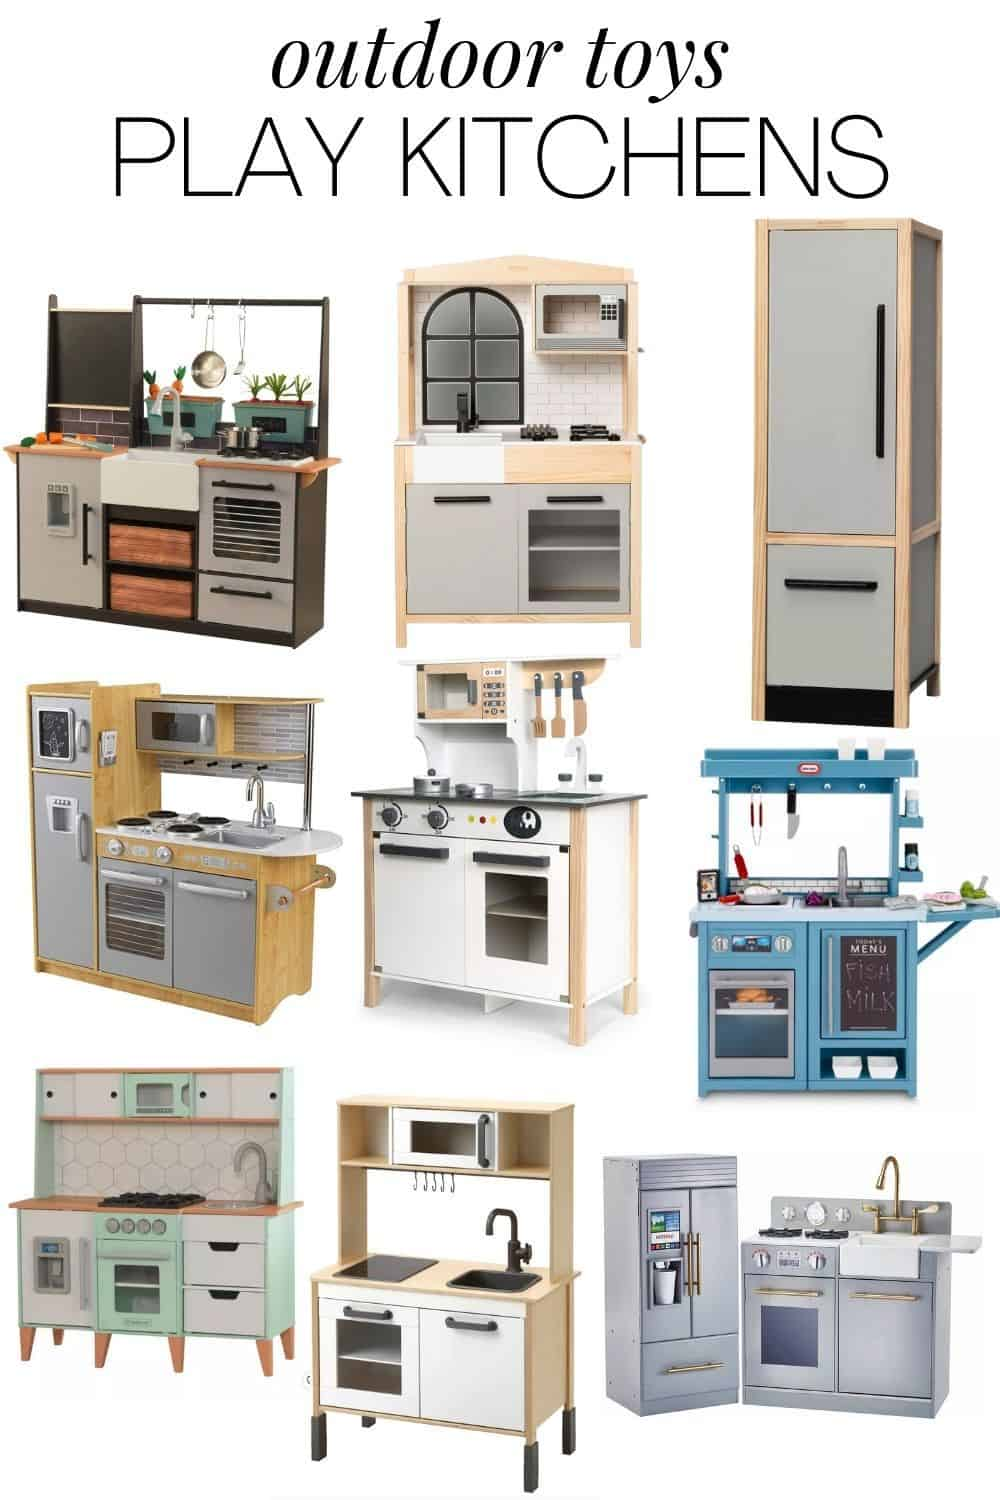 Collage of 9 different play kitchens for kids, perfect for an outdoor playhouse